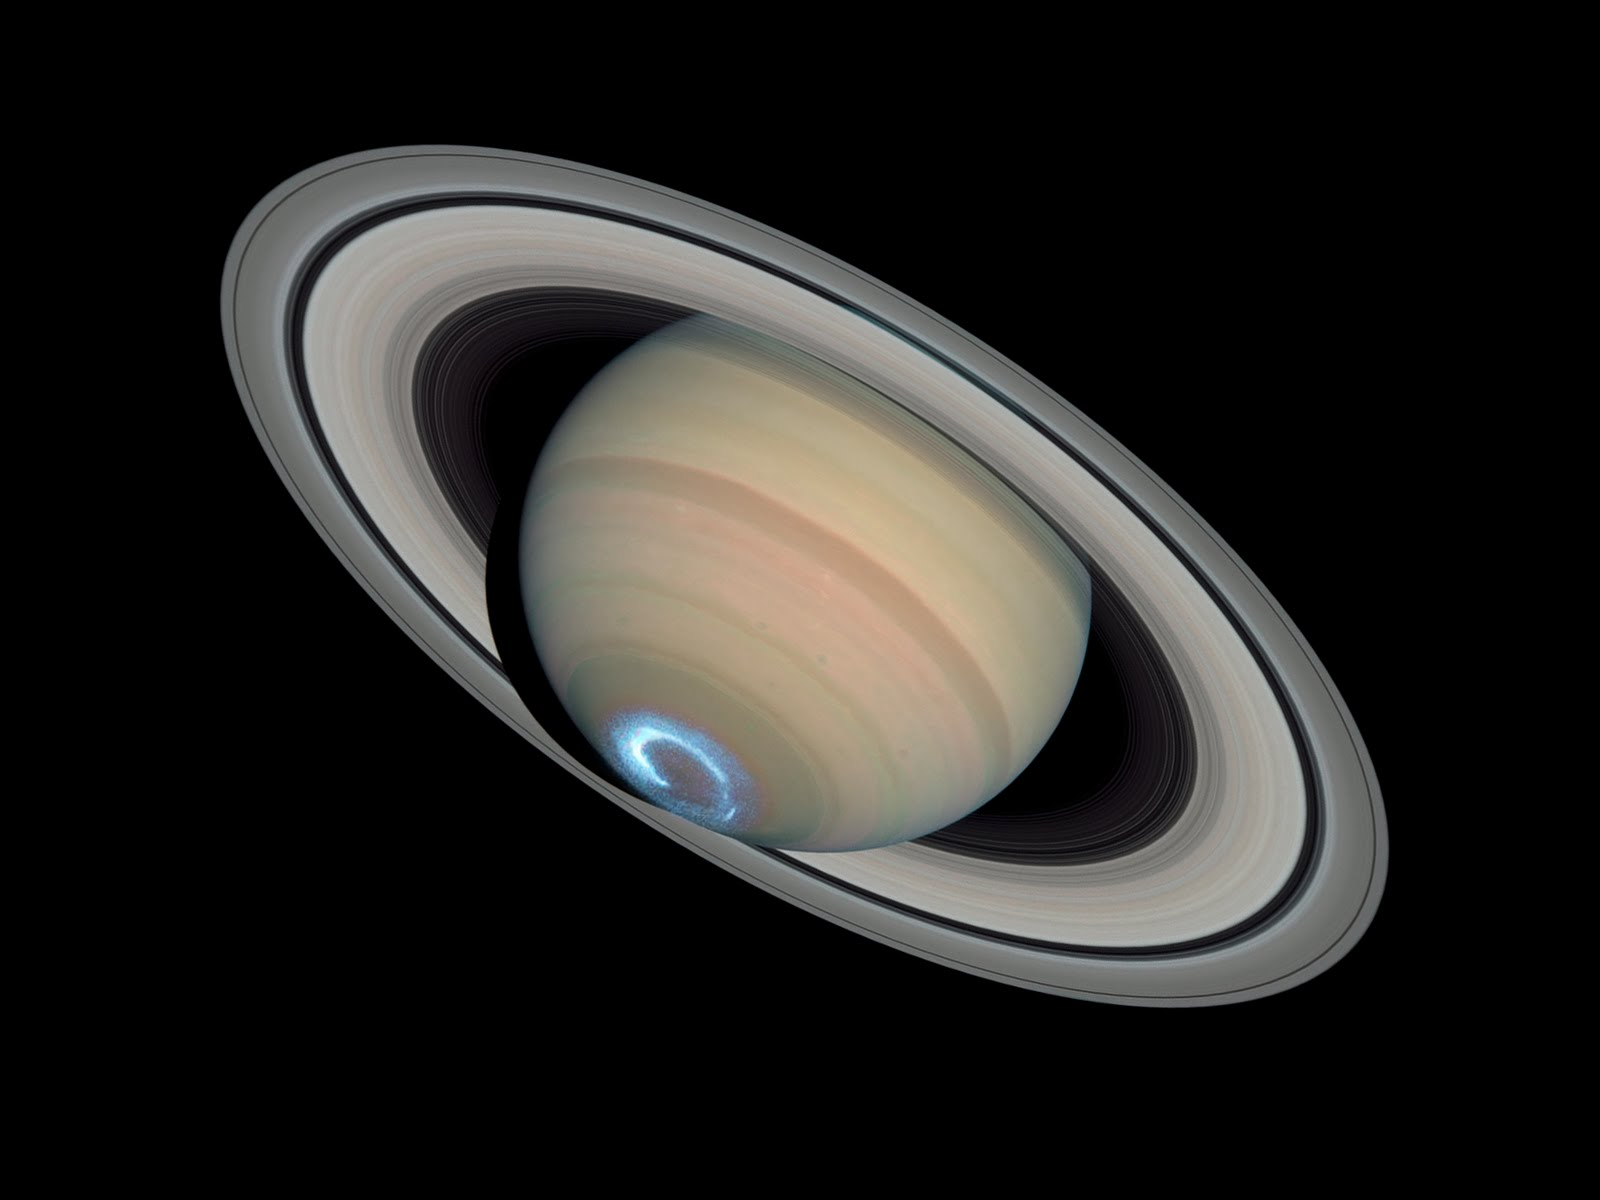 hubble images of saturn - photo #13